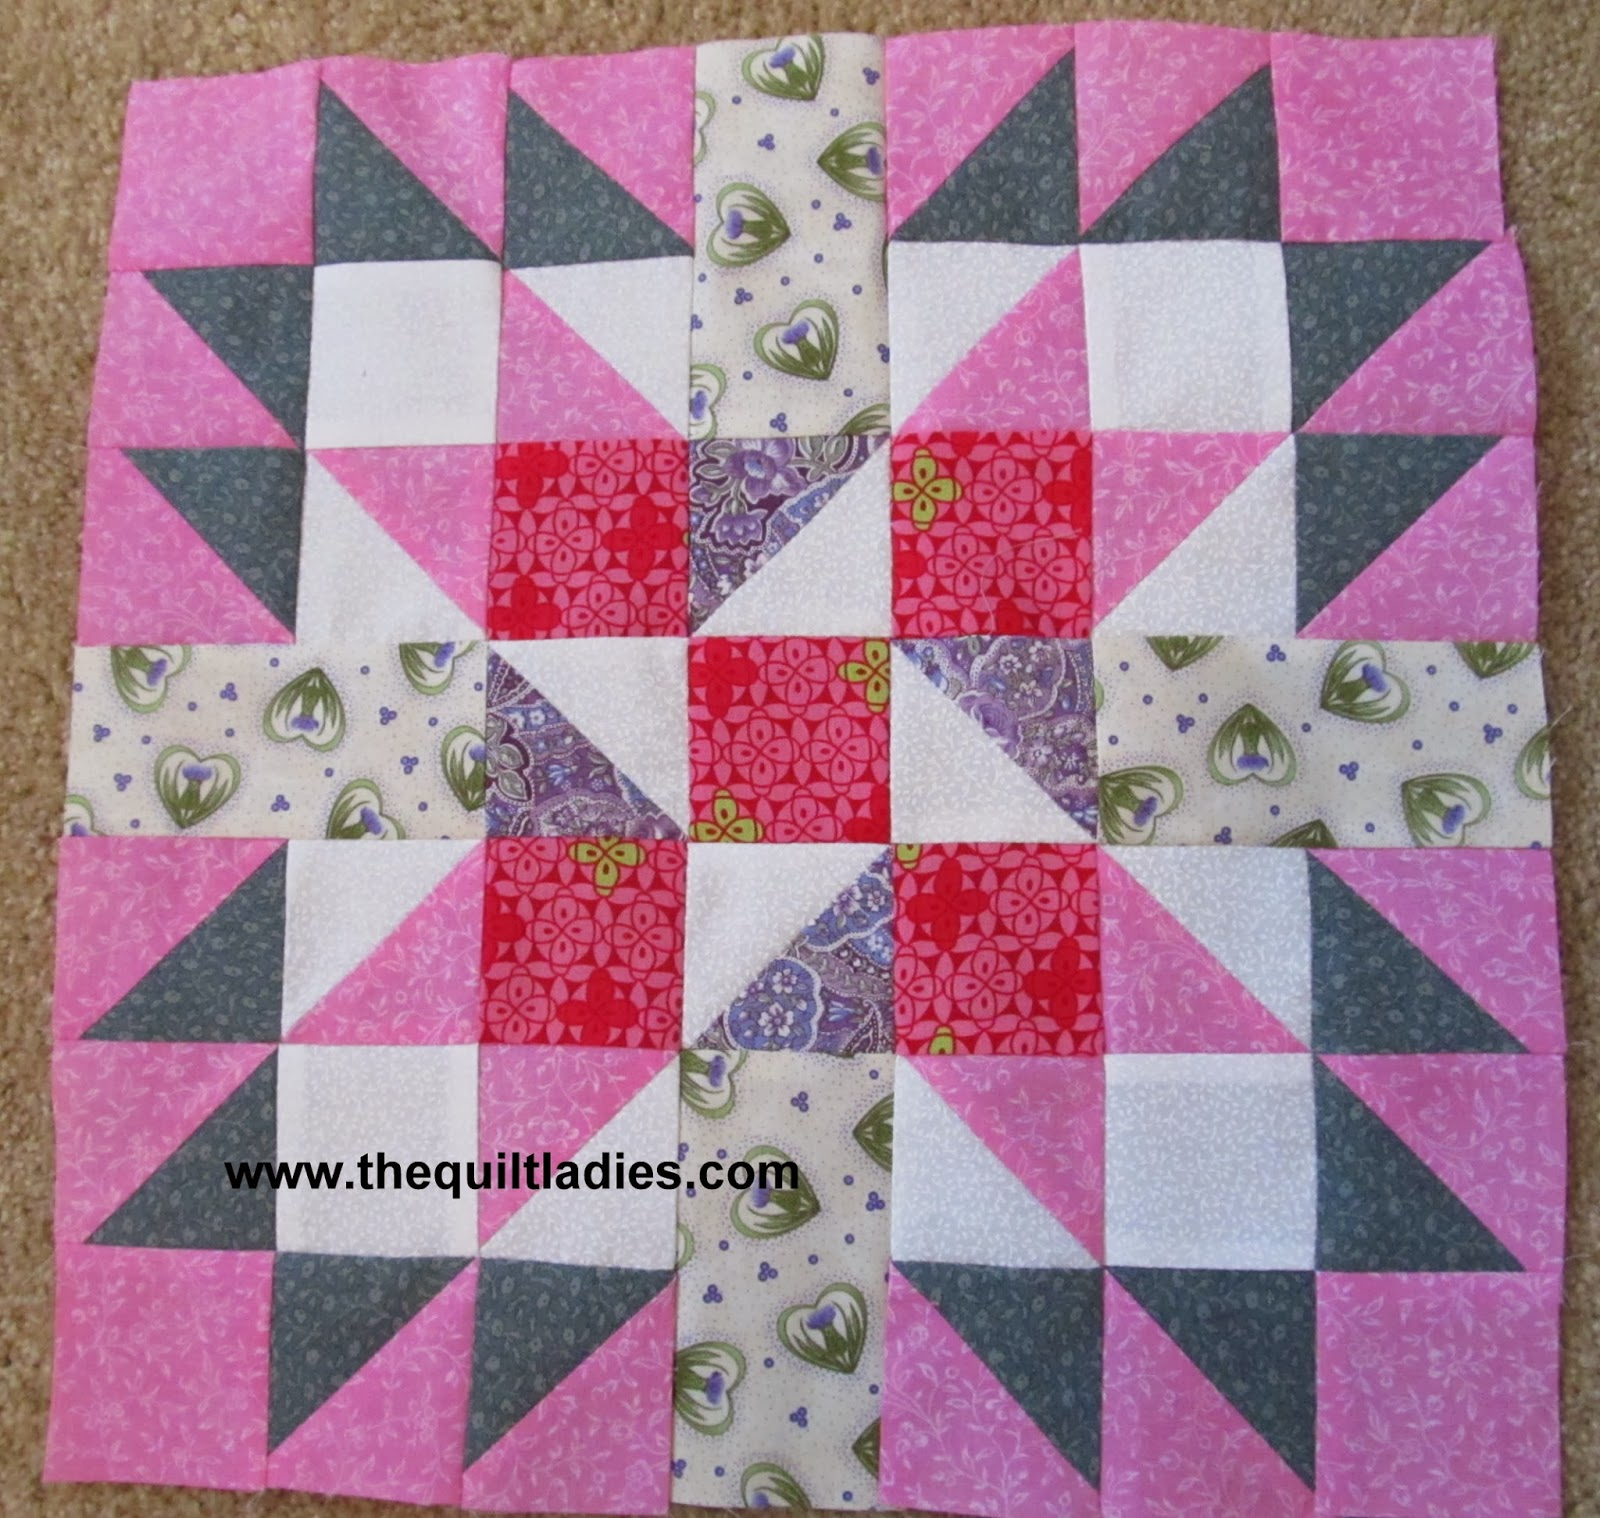 http://www.shop.thequiltladies.com/product.sc?productId=78&categoryId=37